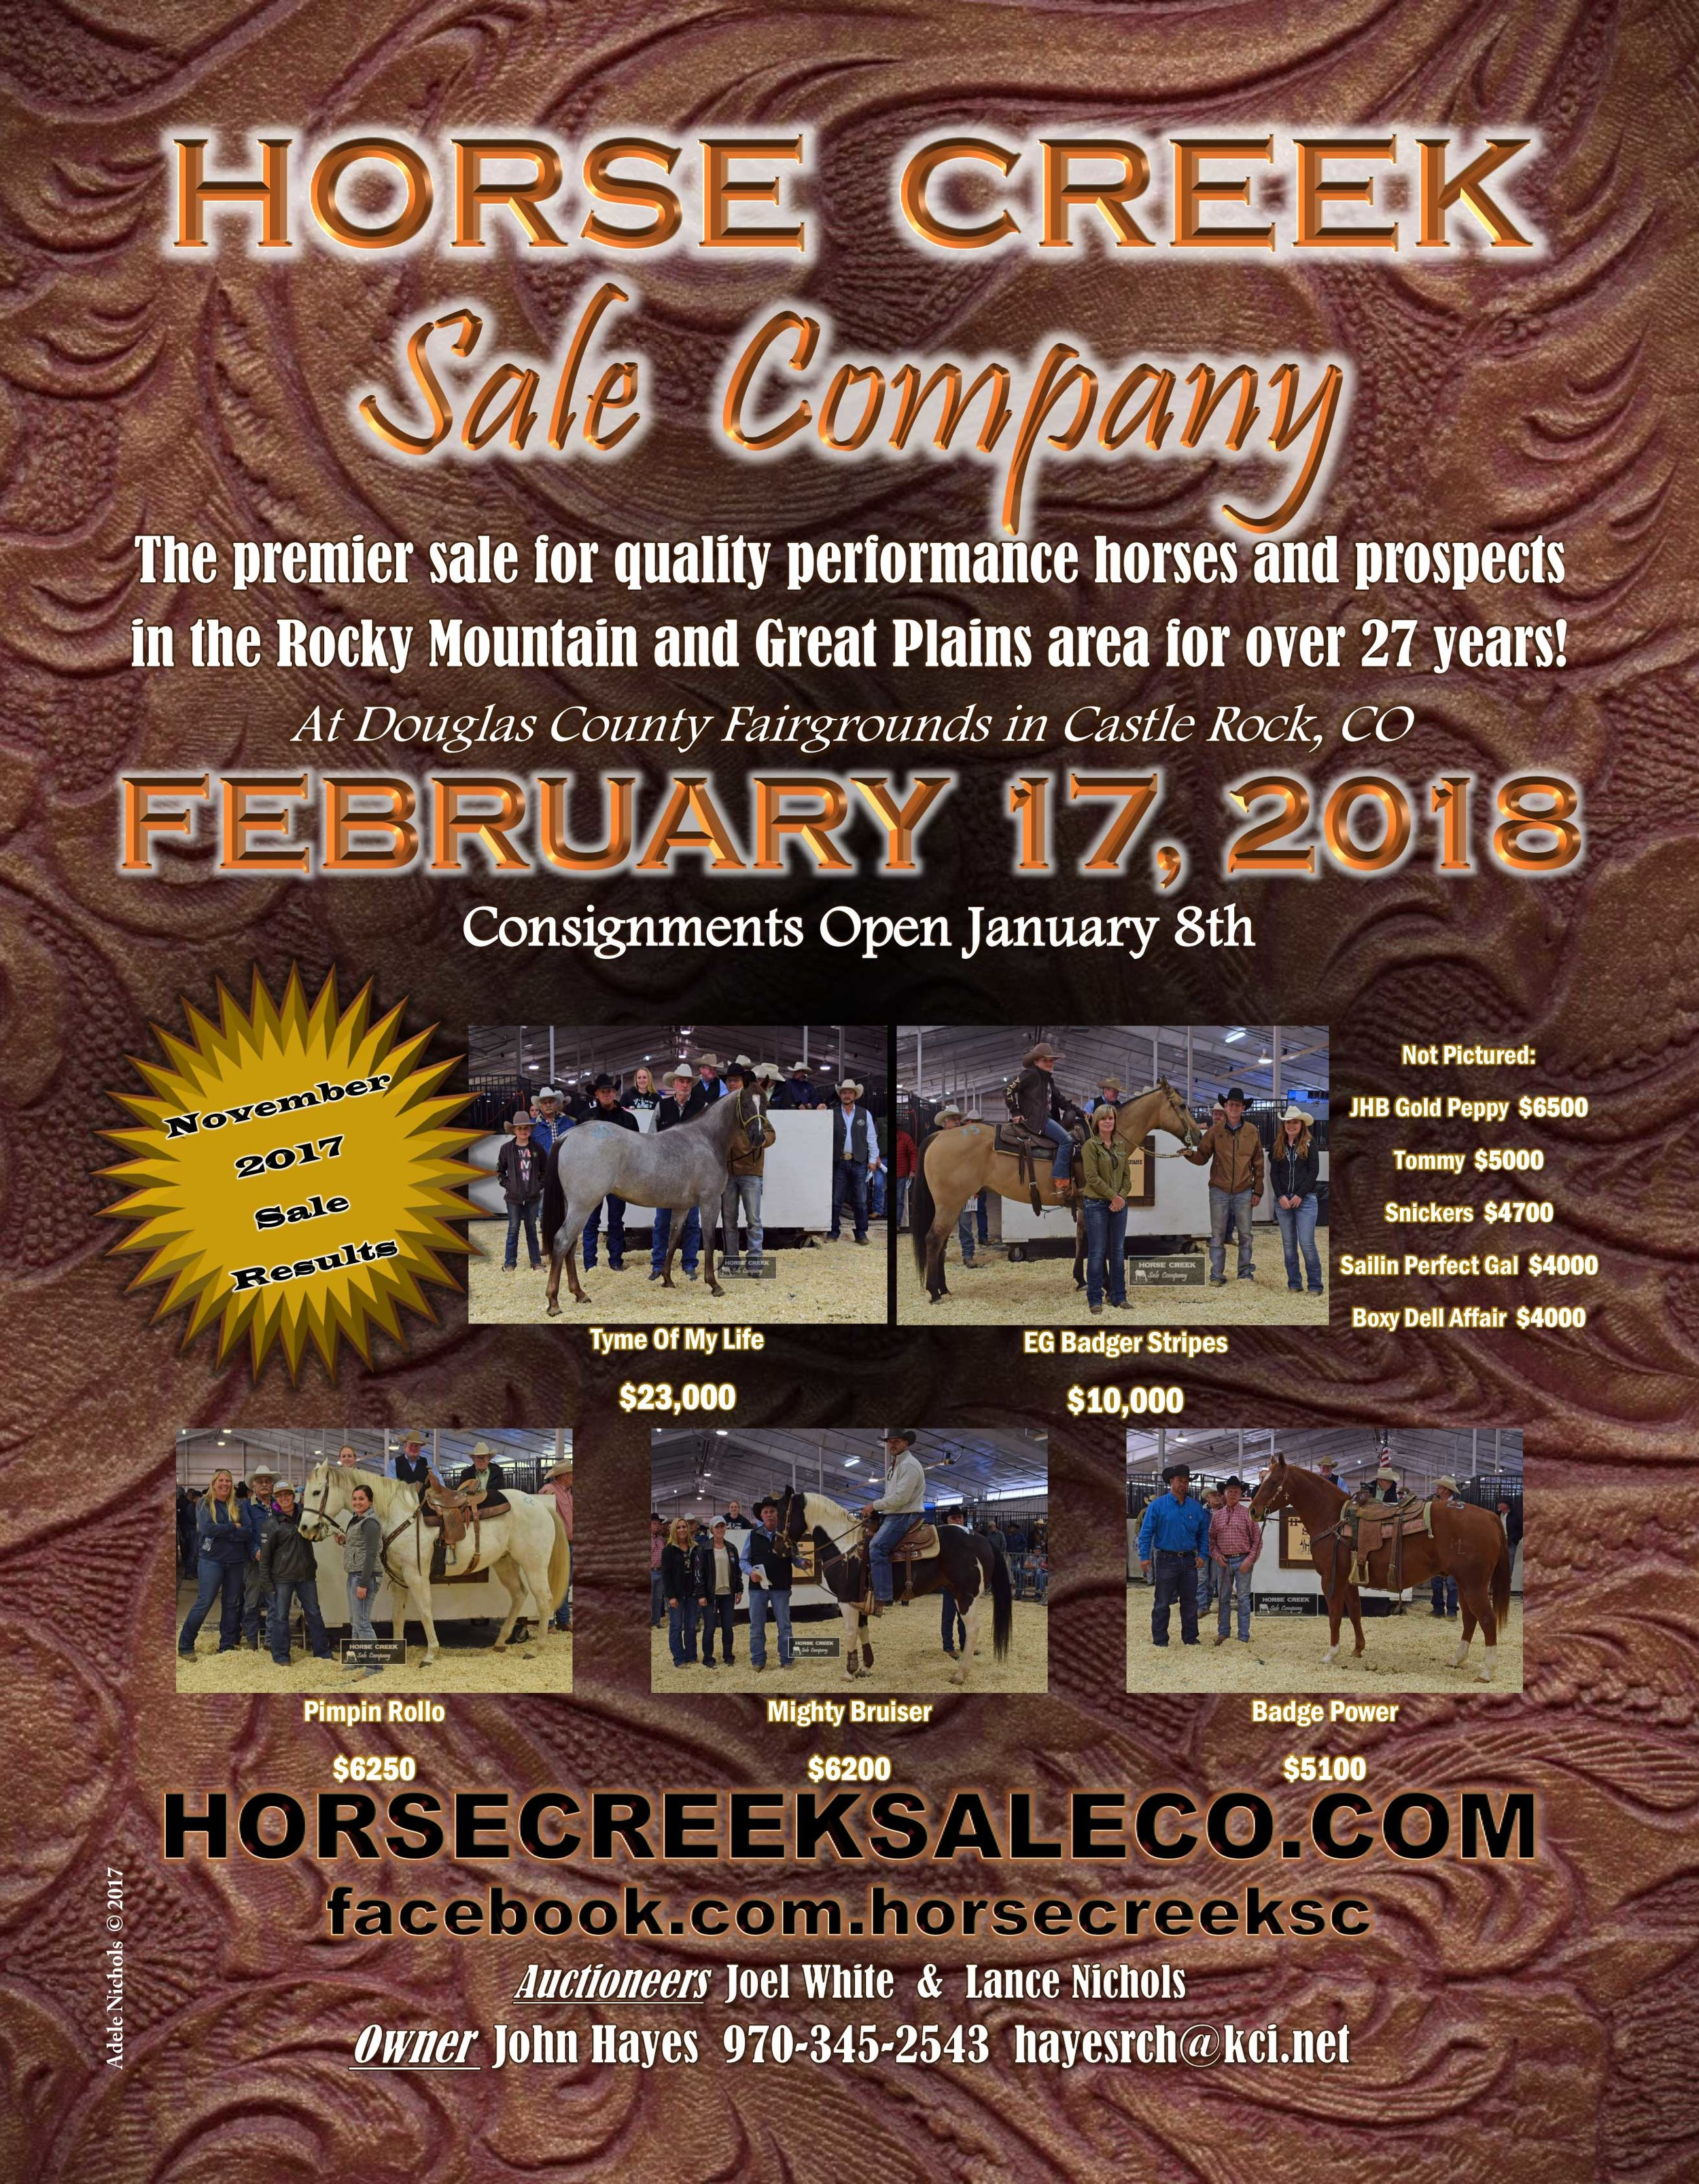 Click image to visit Horse Creek's website for more information